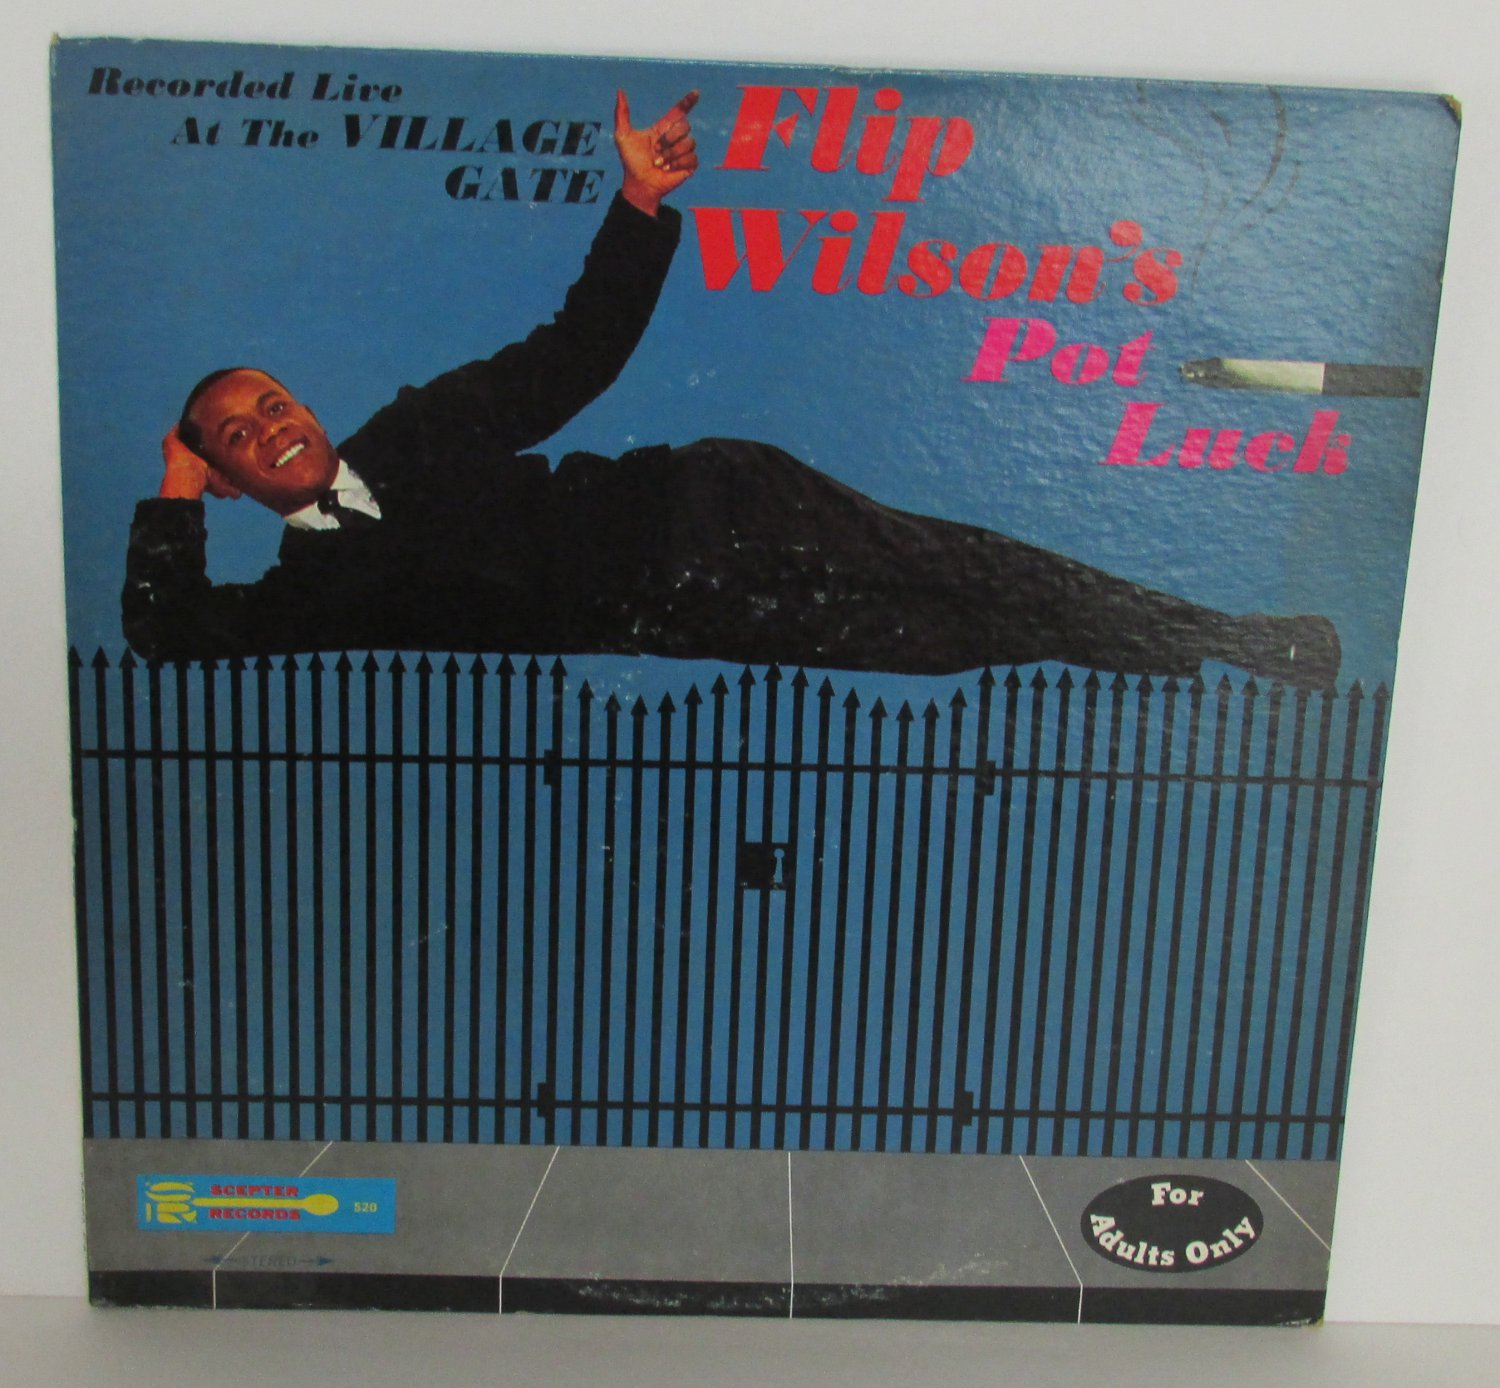 Pot Luck FLIP WILSON Scepter Records LP Record Vinal ALBUM Scepter 520